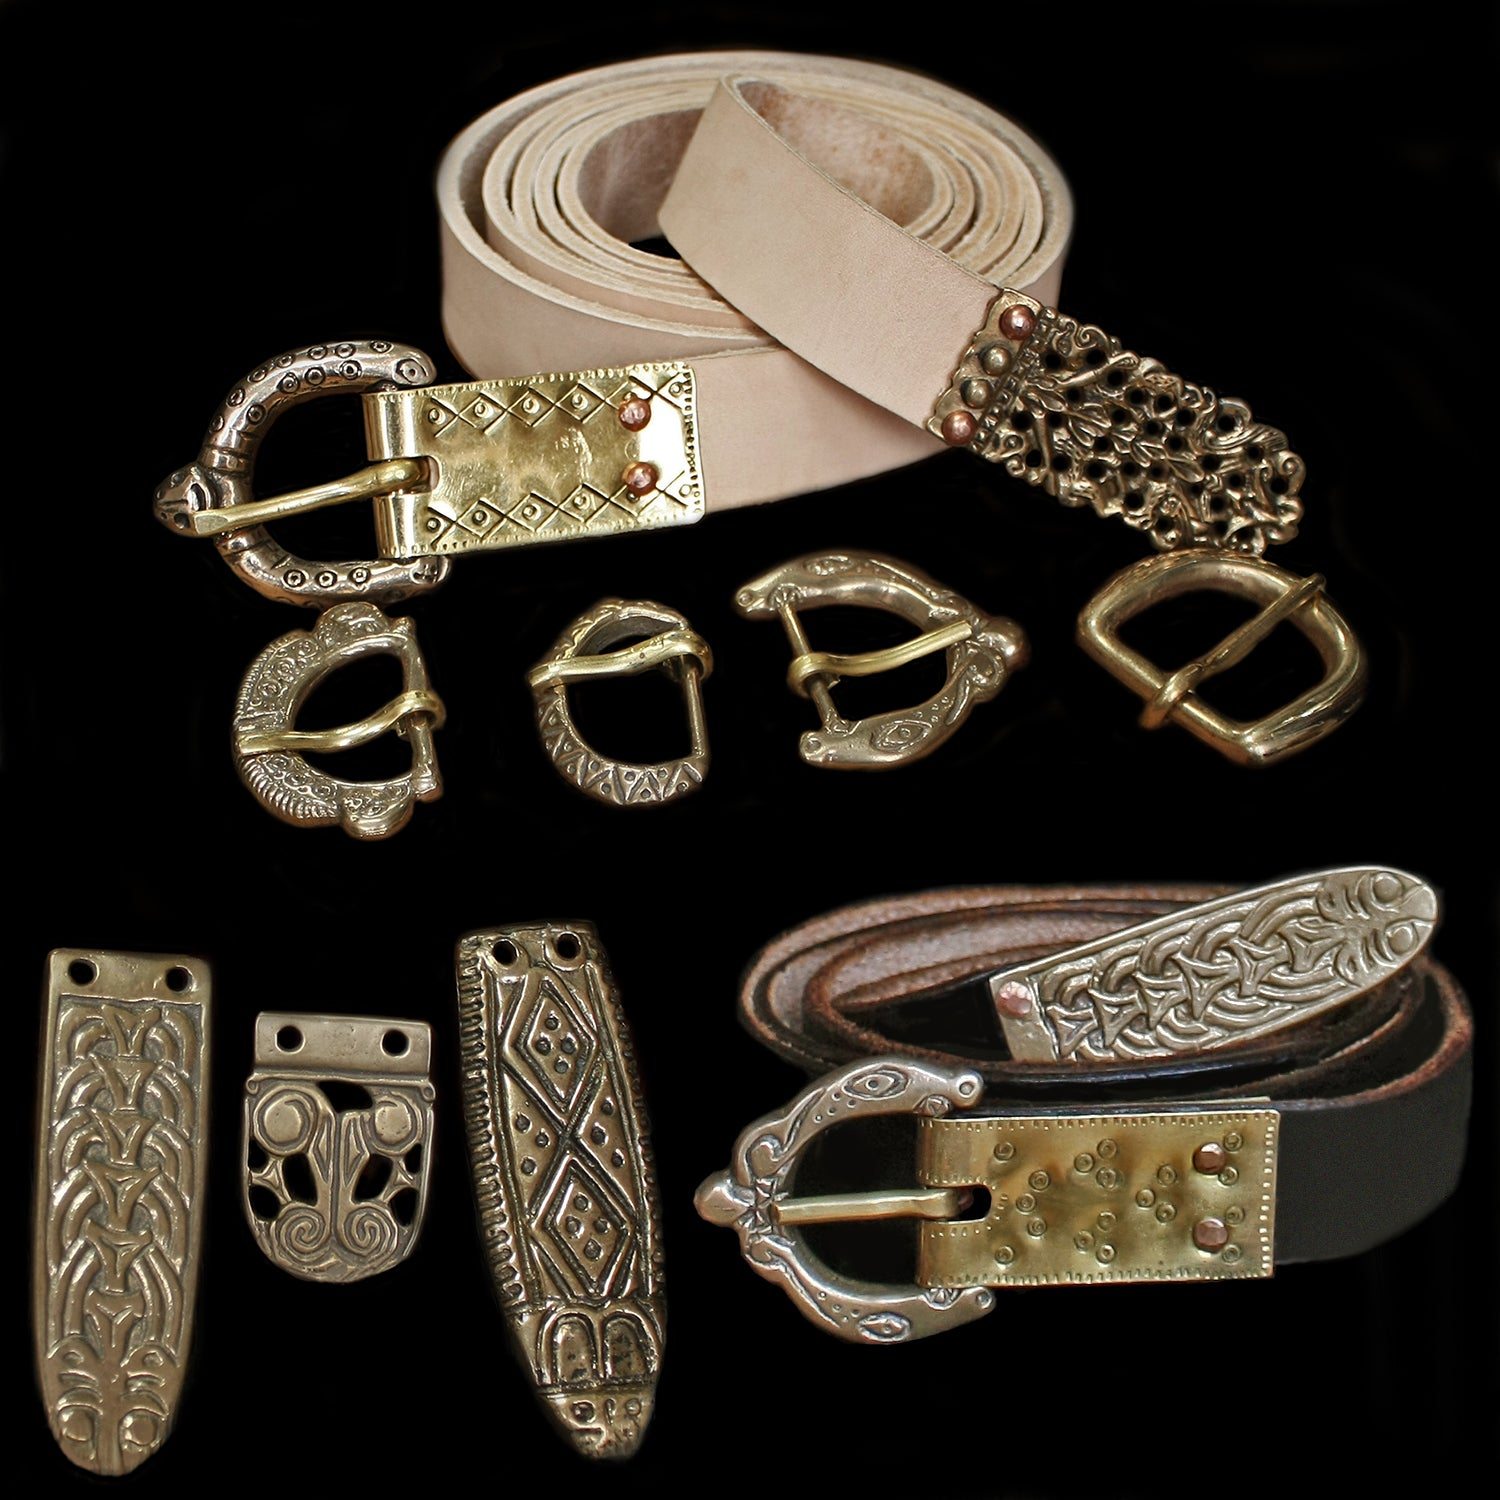 Fully Customisable Handmade Leather Viking Belts with Bronze Replica Fittings - Viking Clothing